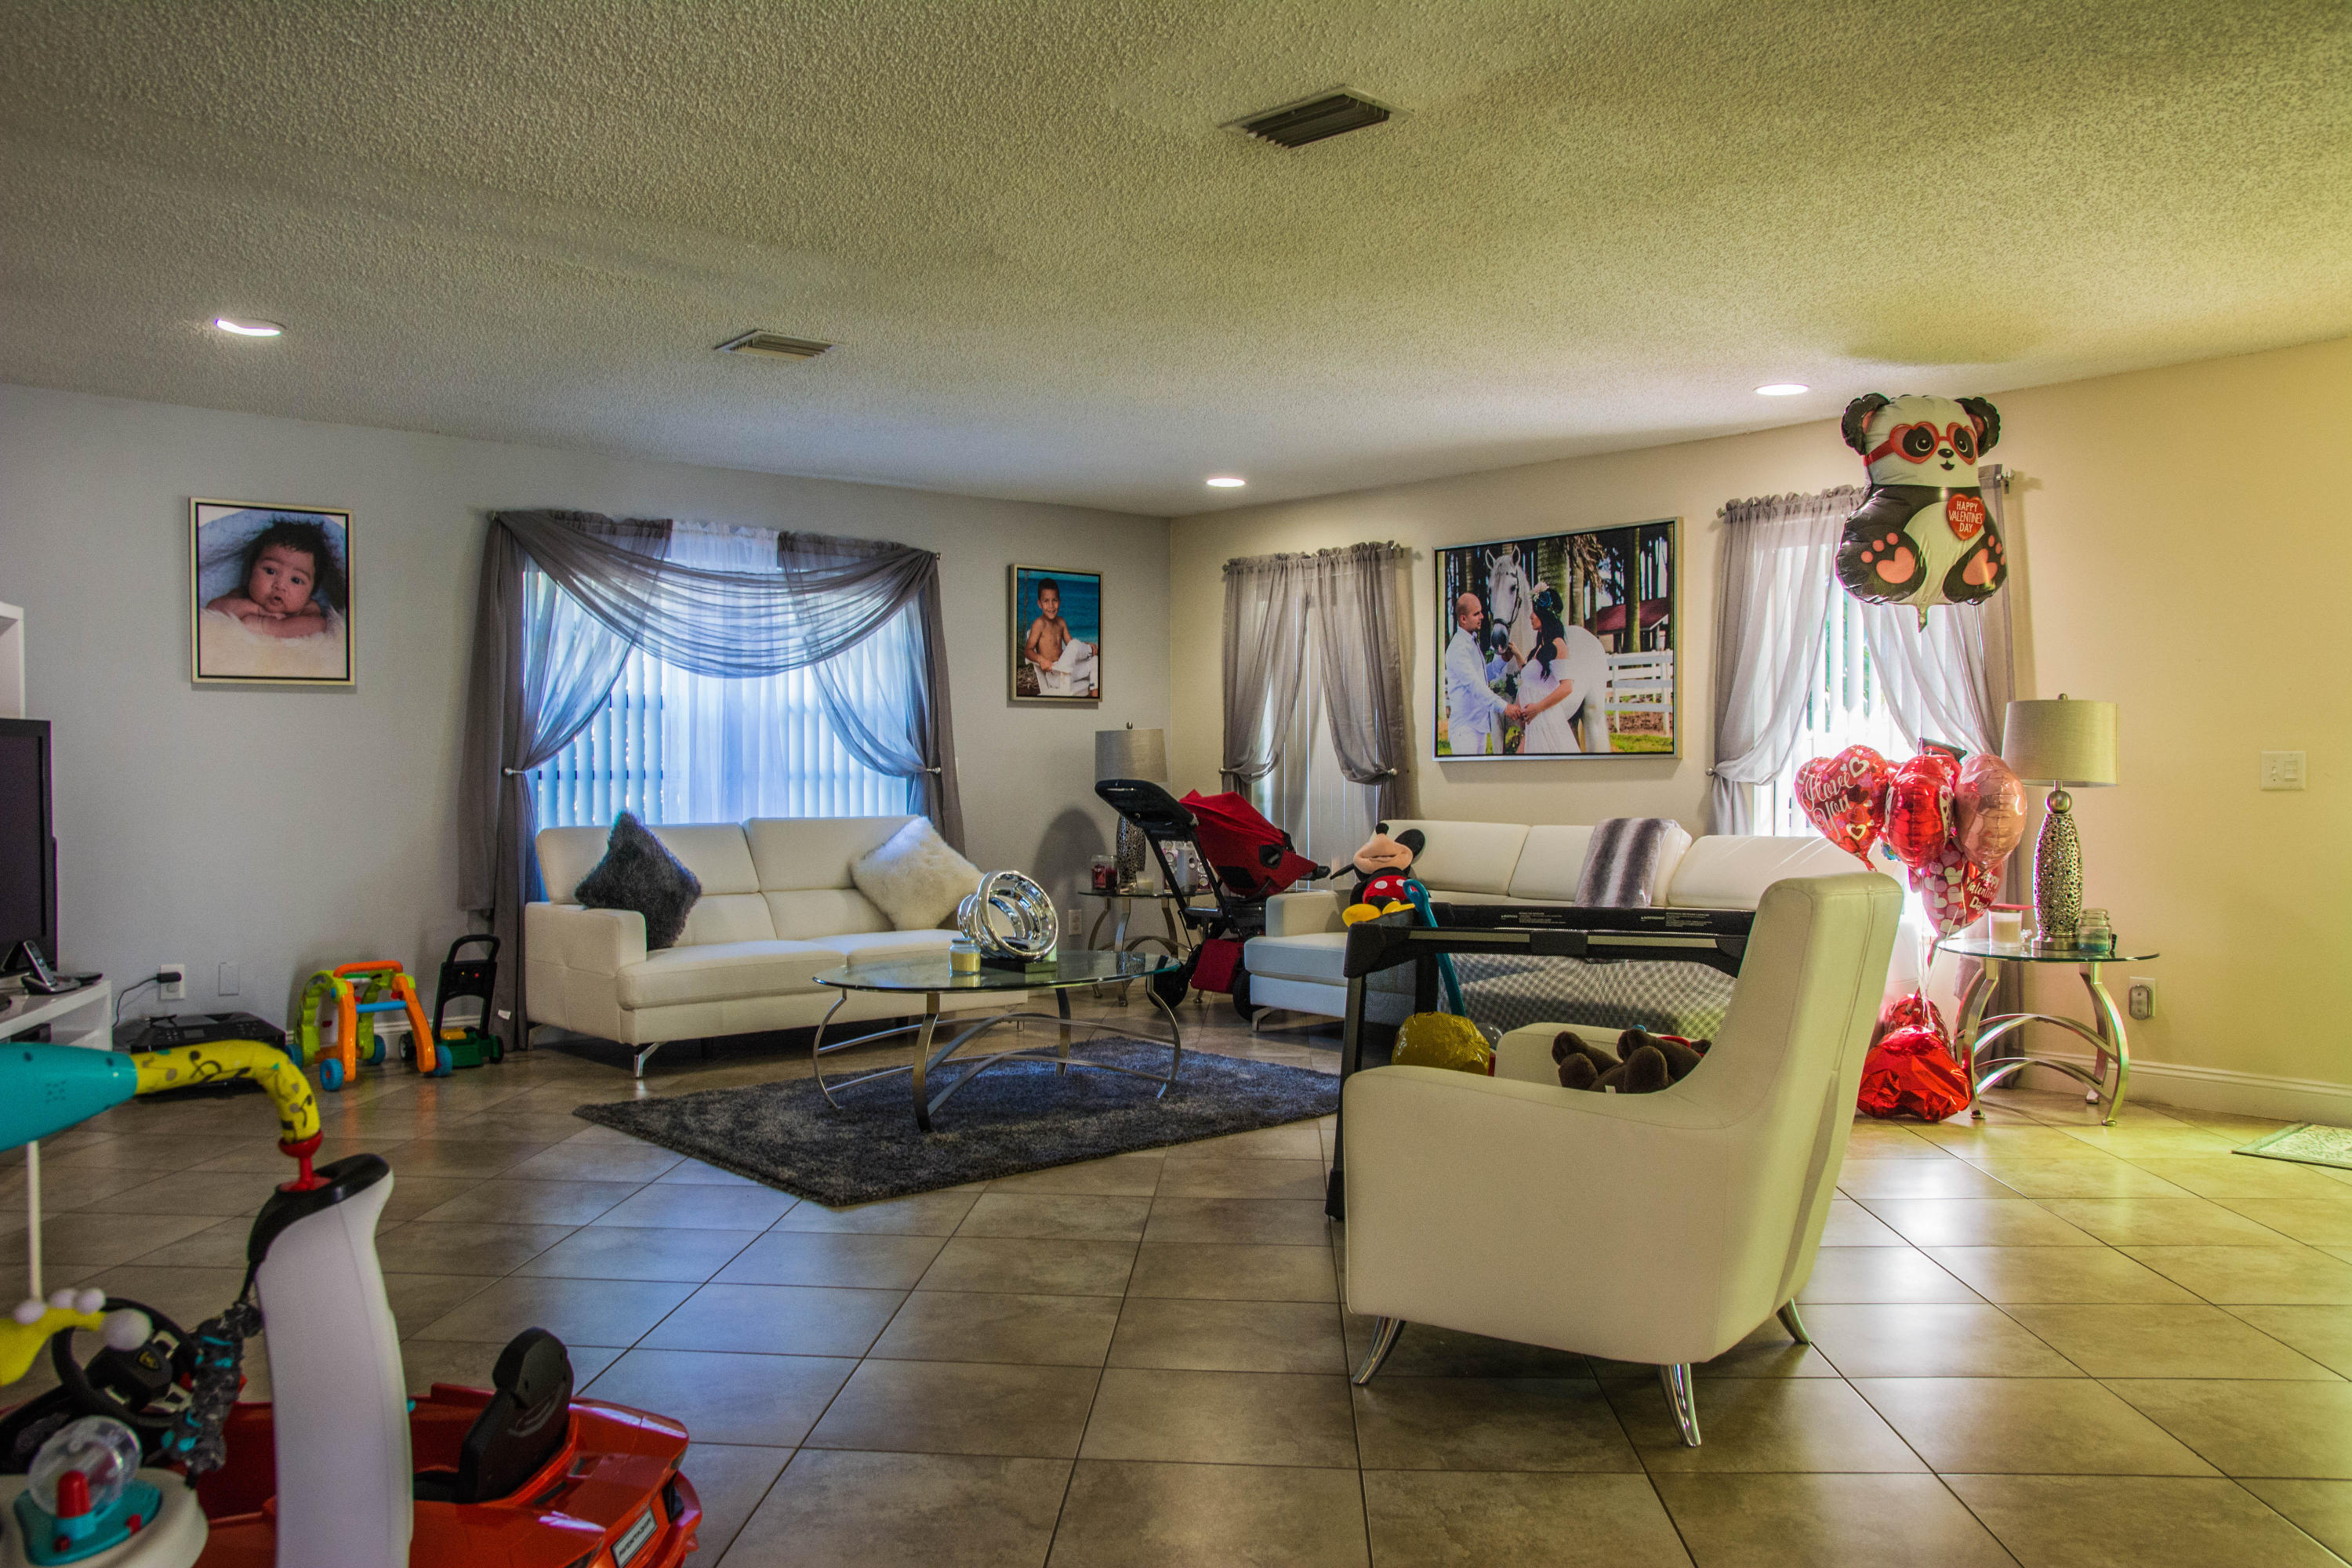 3 Bed 2 Baths Home In Lake Worth For 247 000